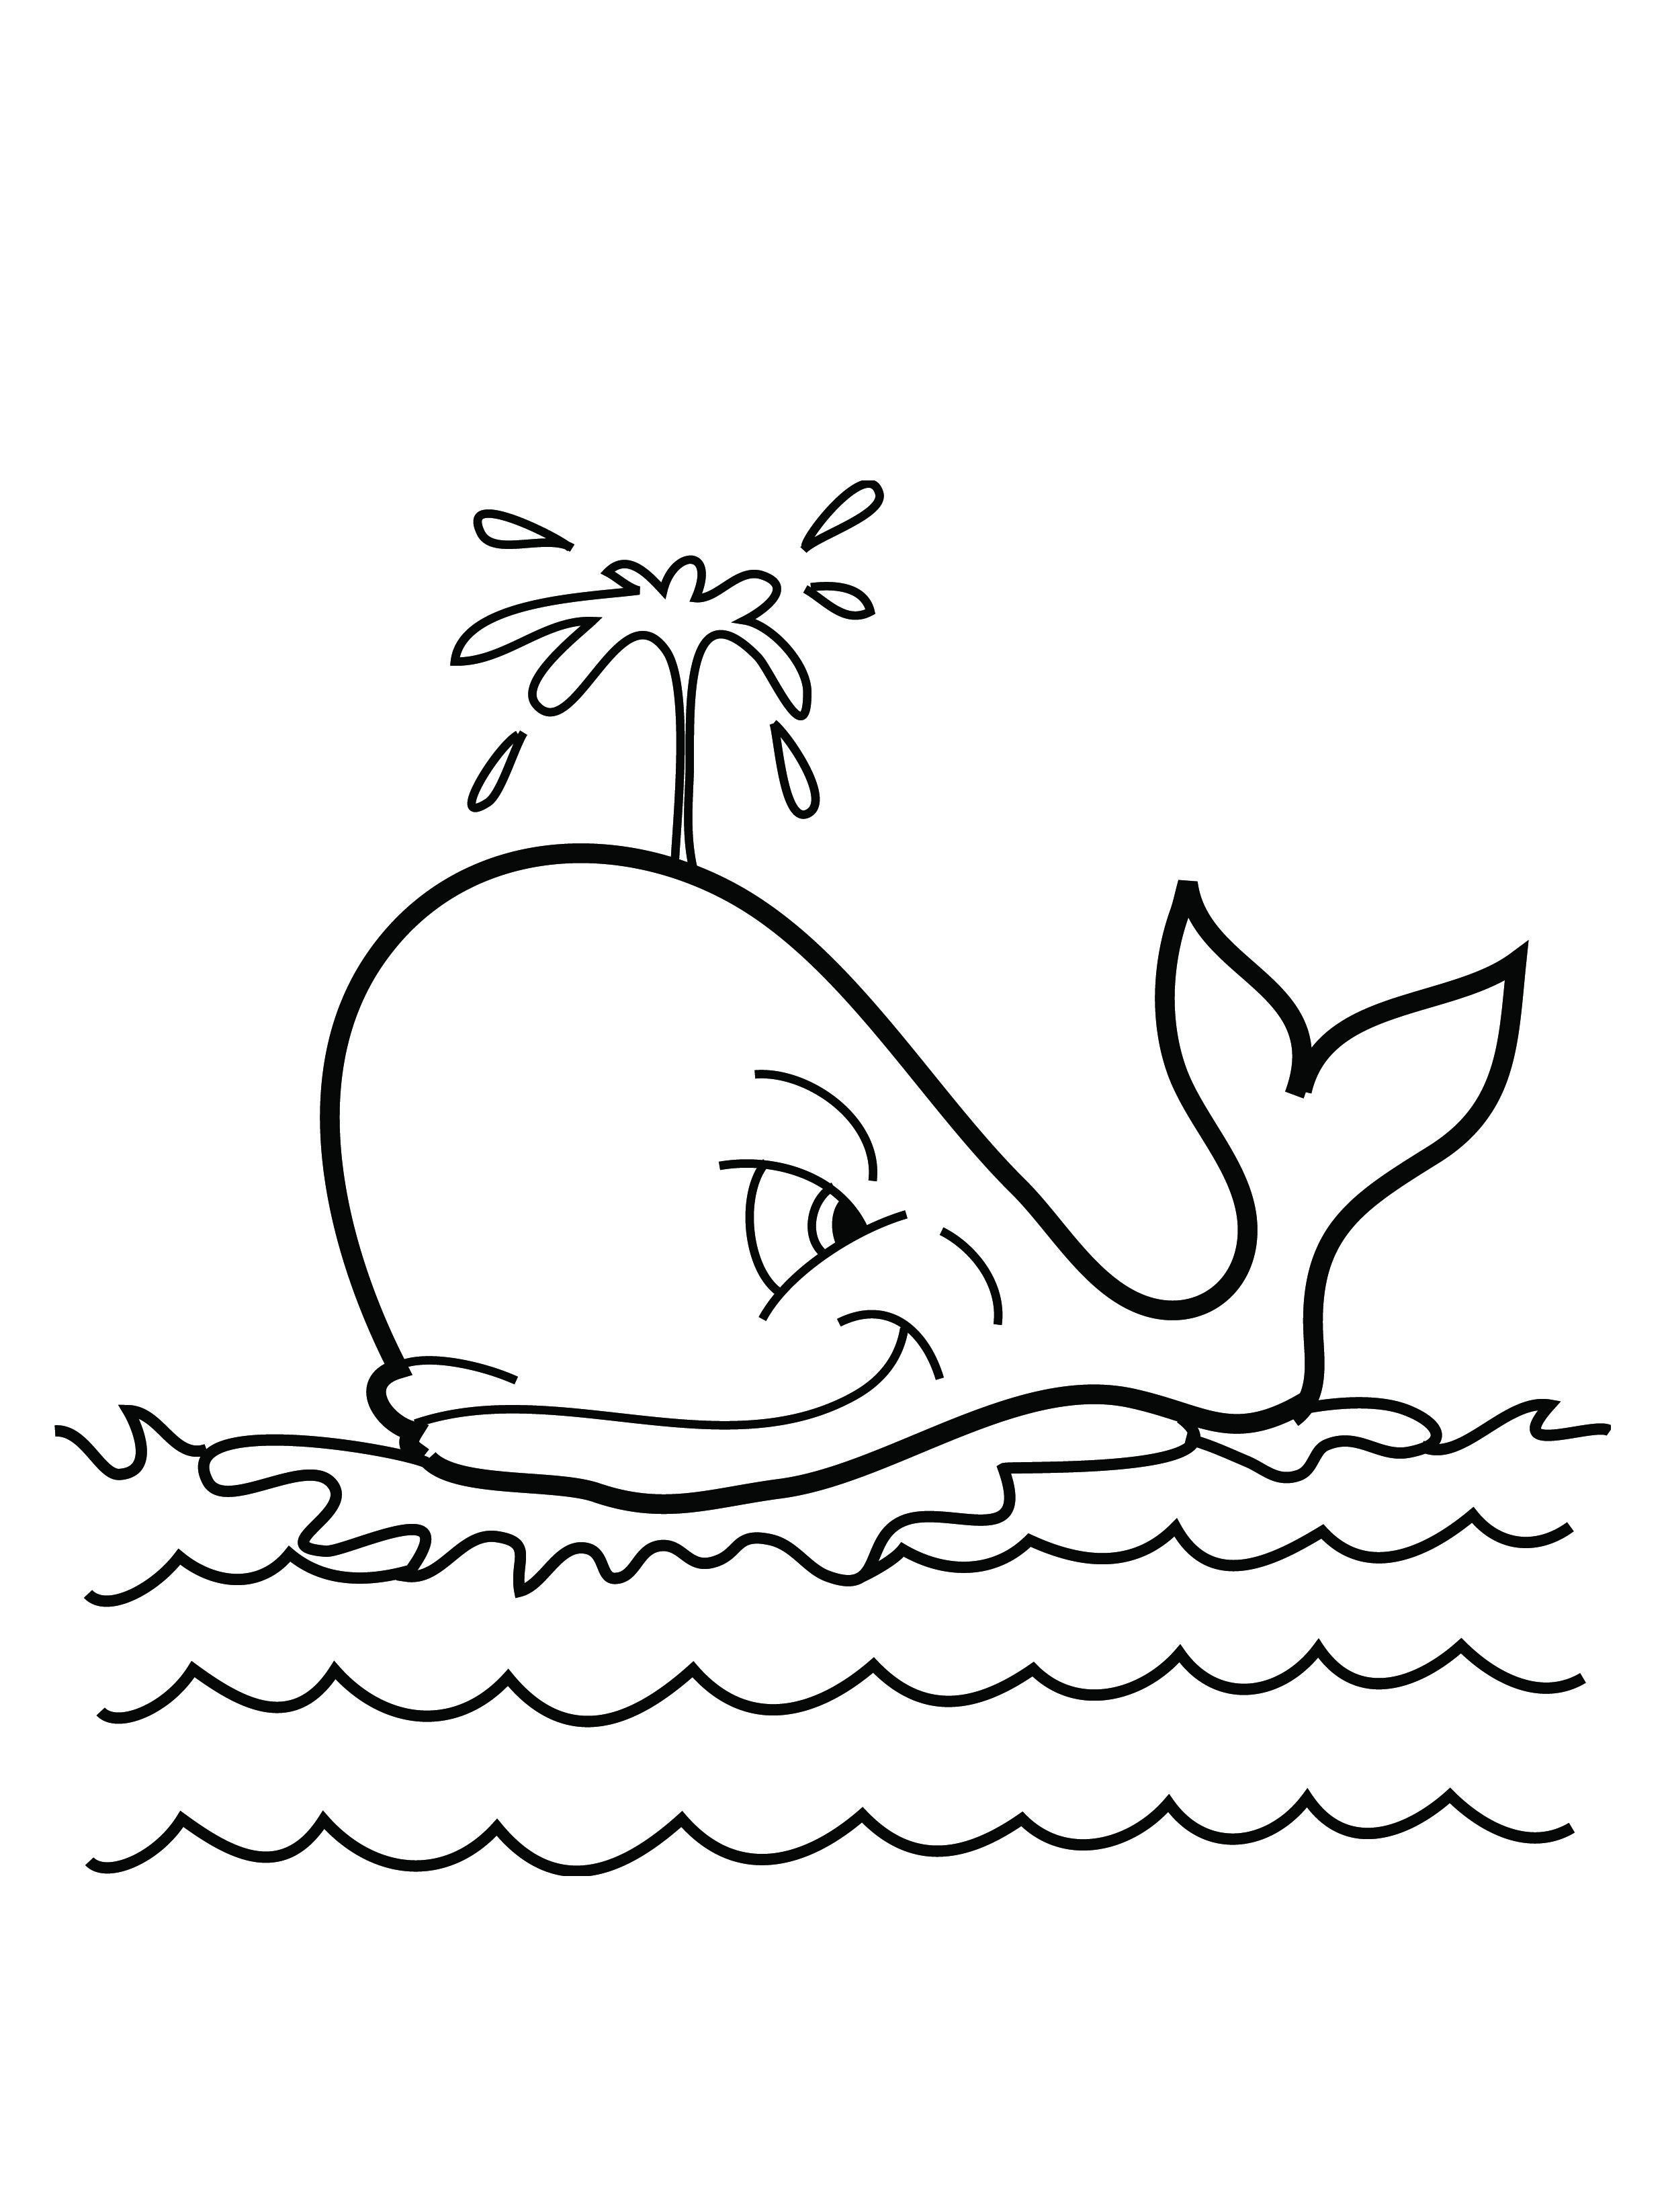 Whale coloring pages to download